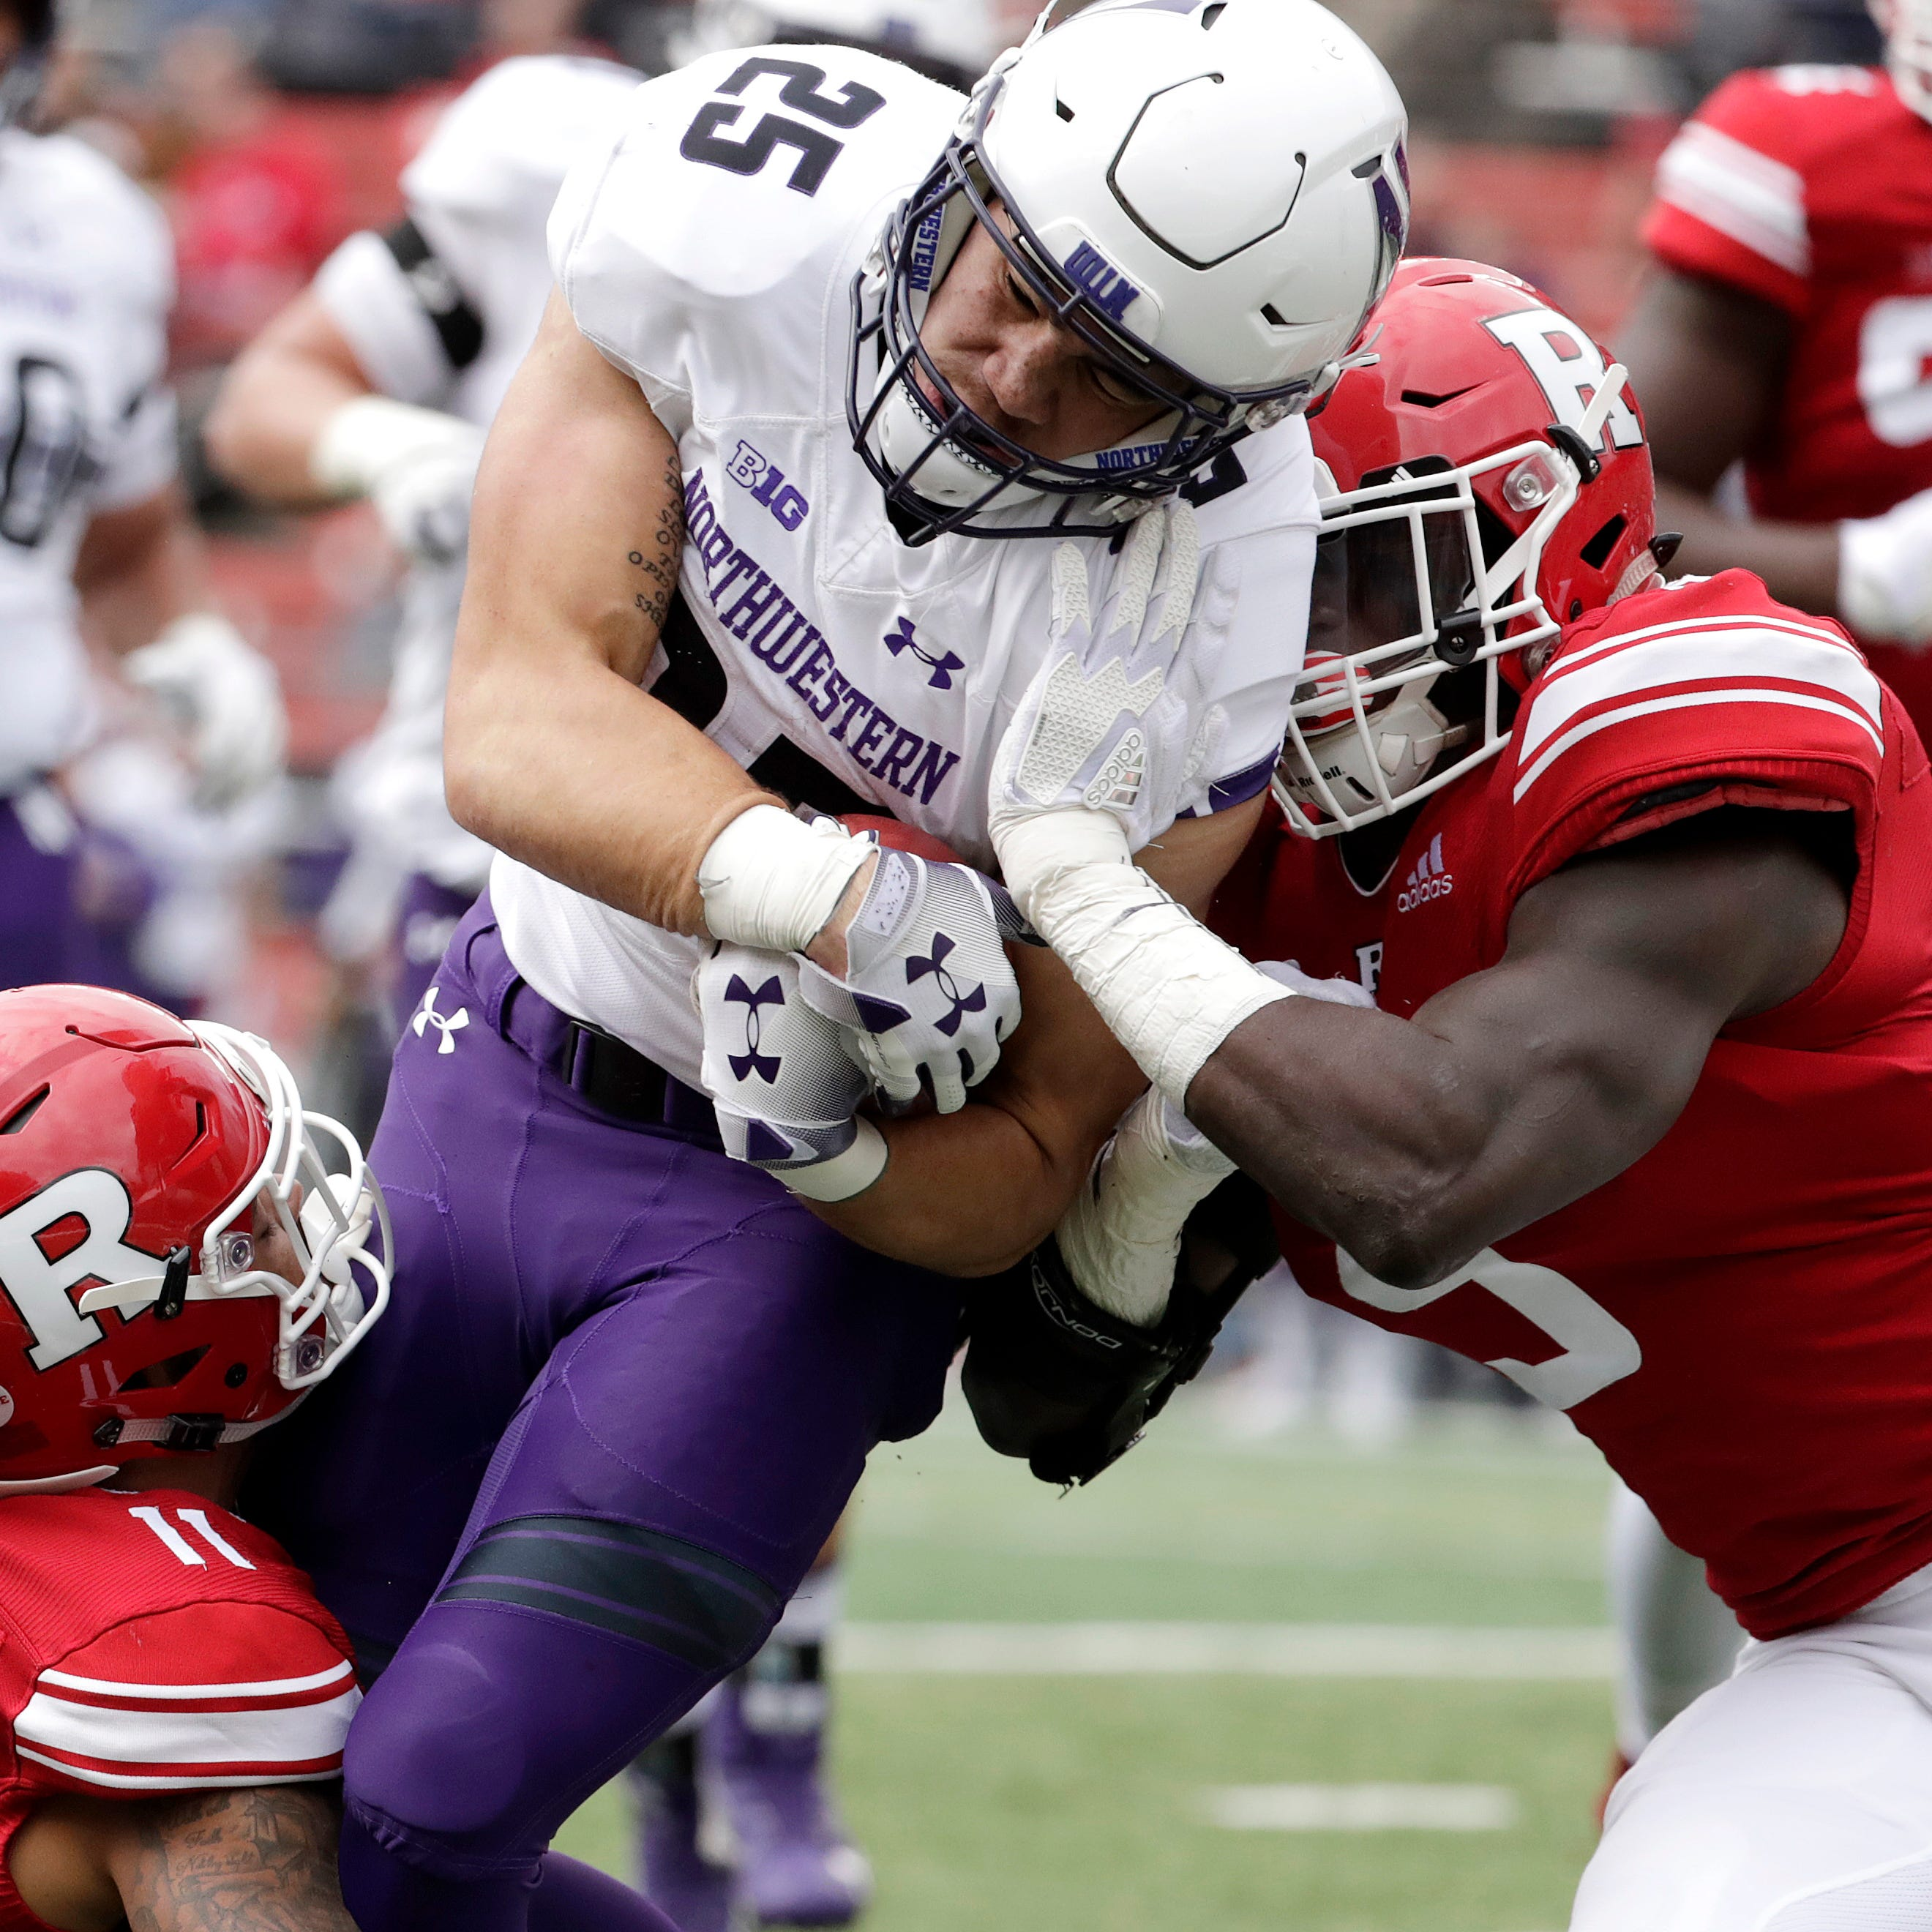 Rutgers football: 1-11 season all but assured with loss to Northwestern